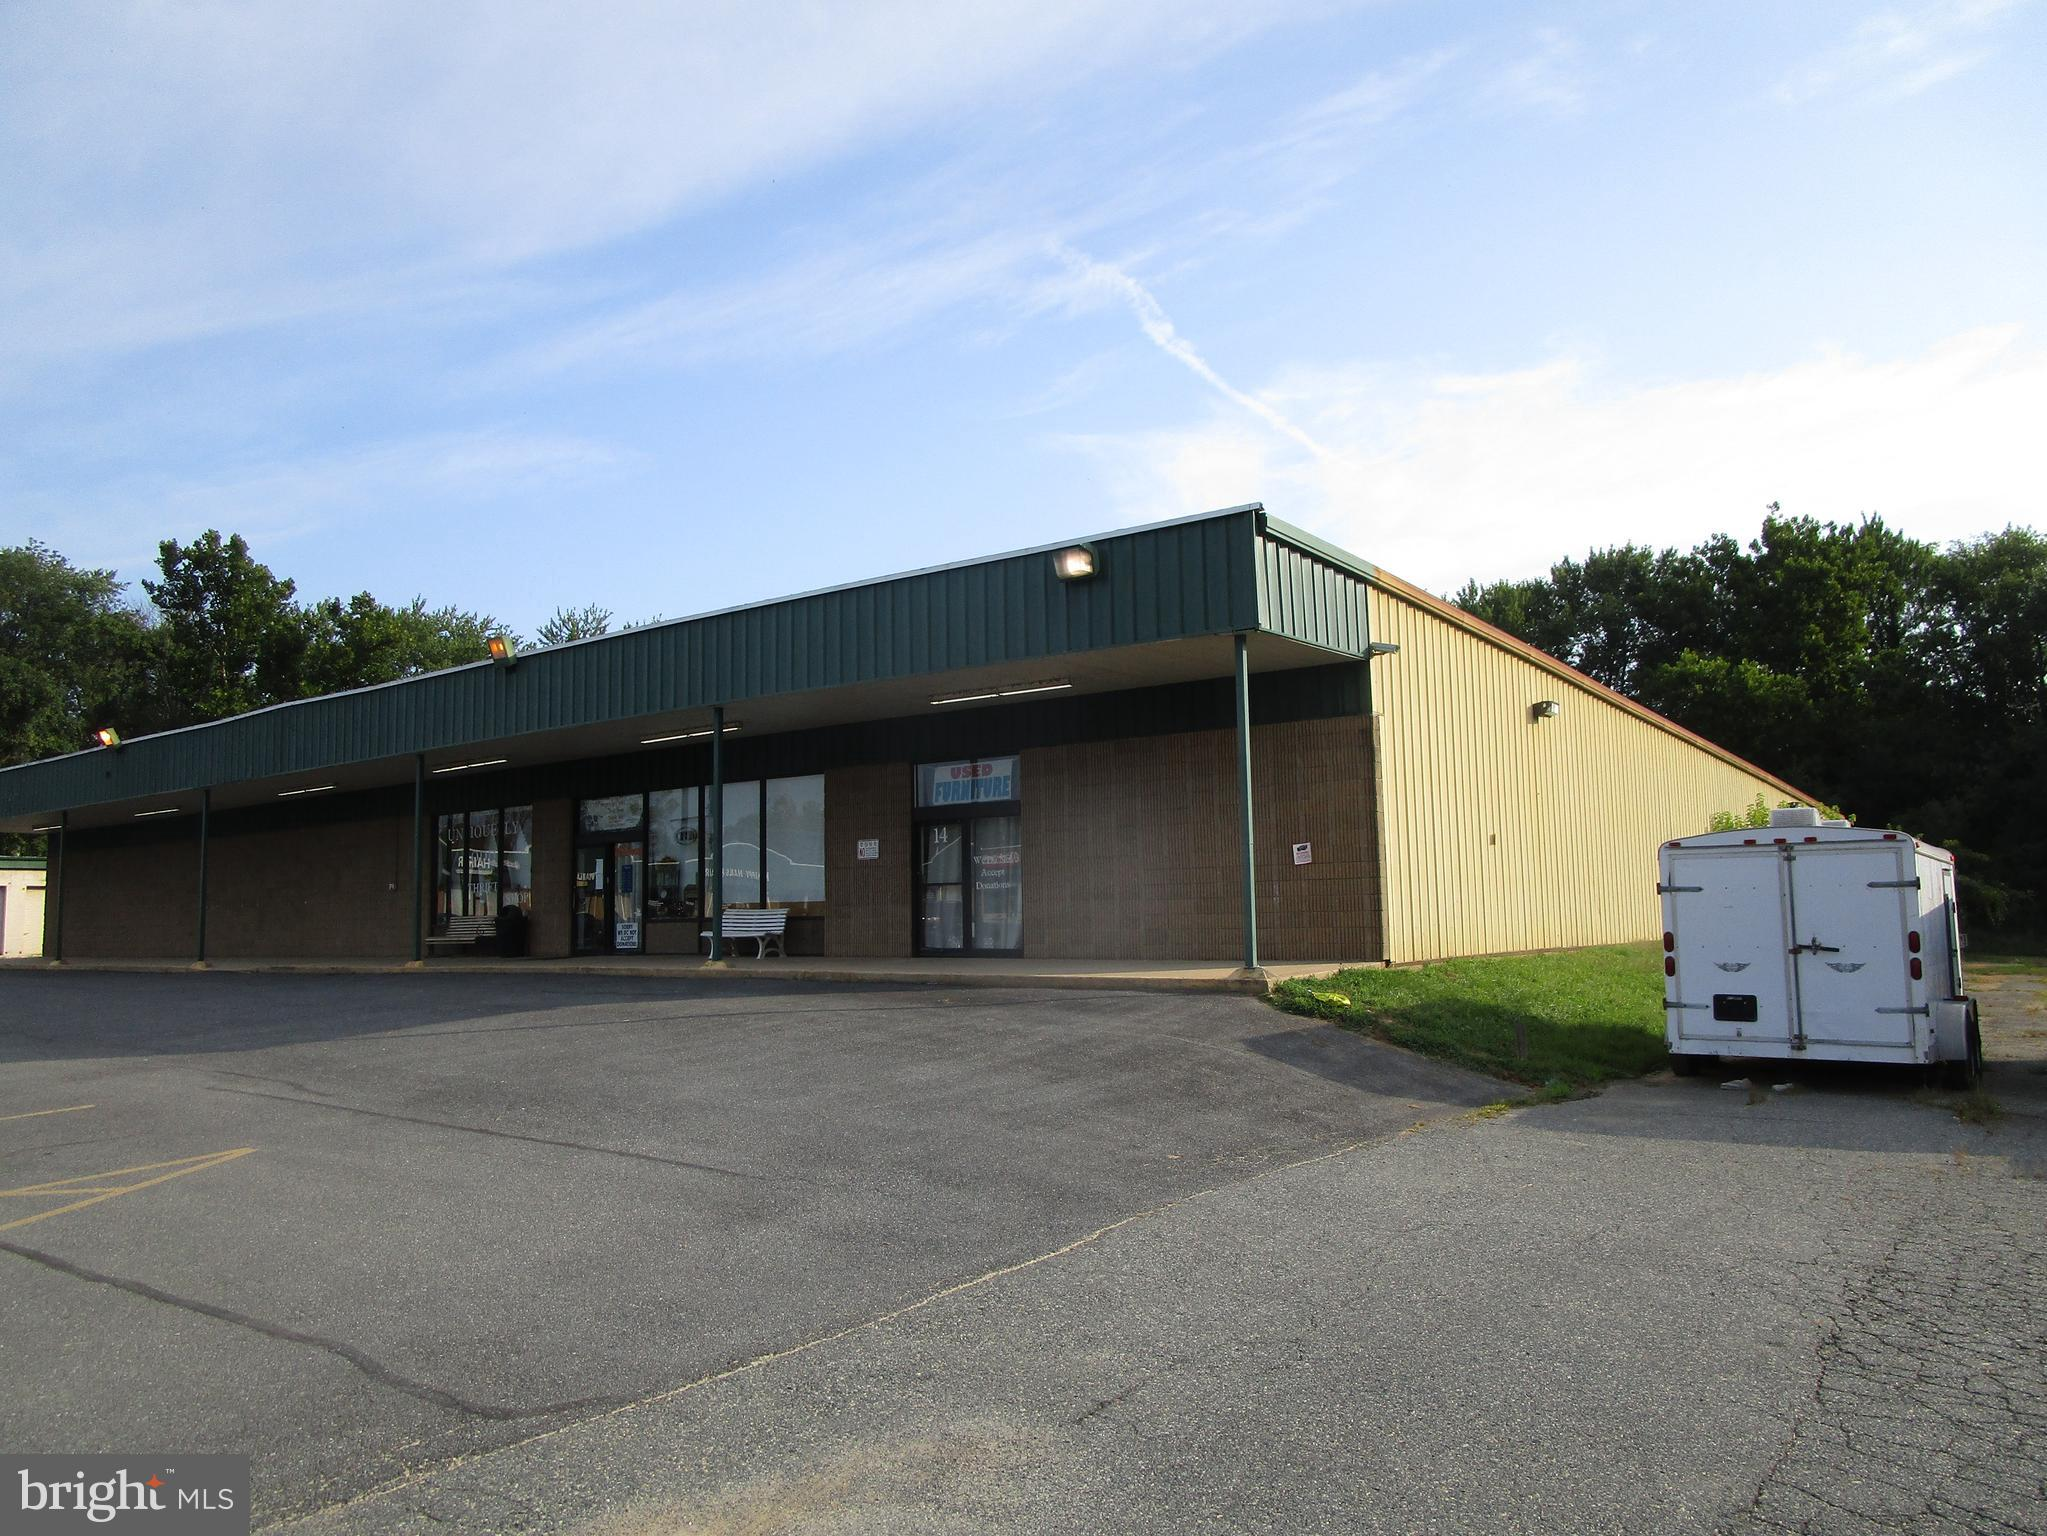 primary photo for 14 COMMERCIAL PLAZA, ELKTON, MD 21921, US